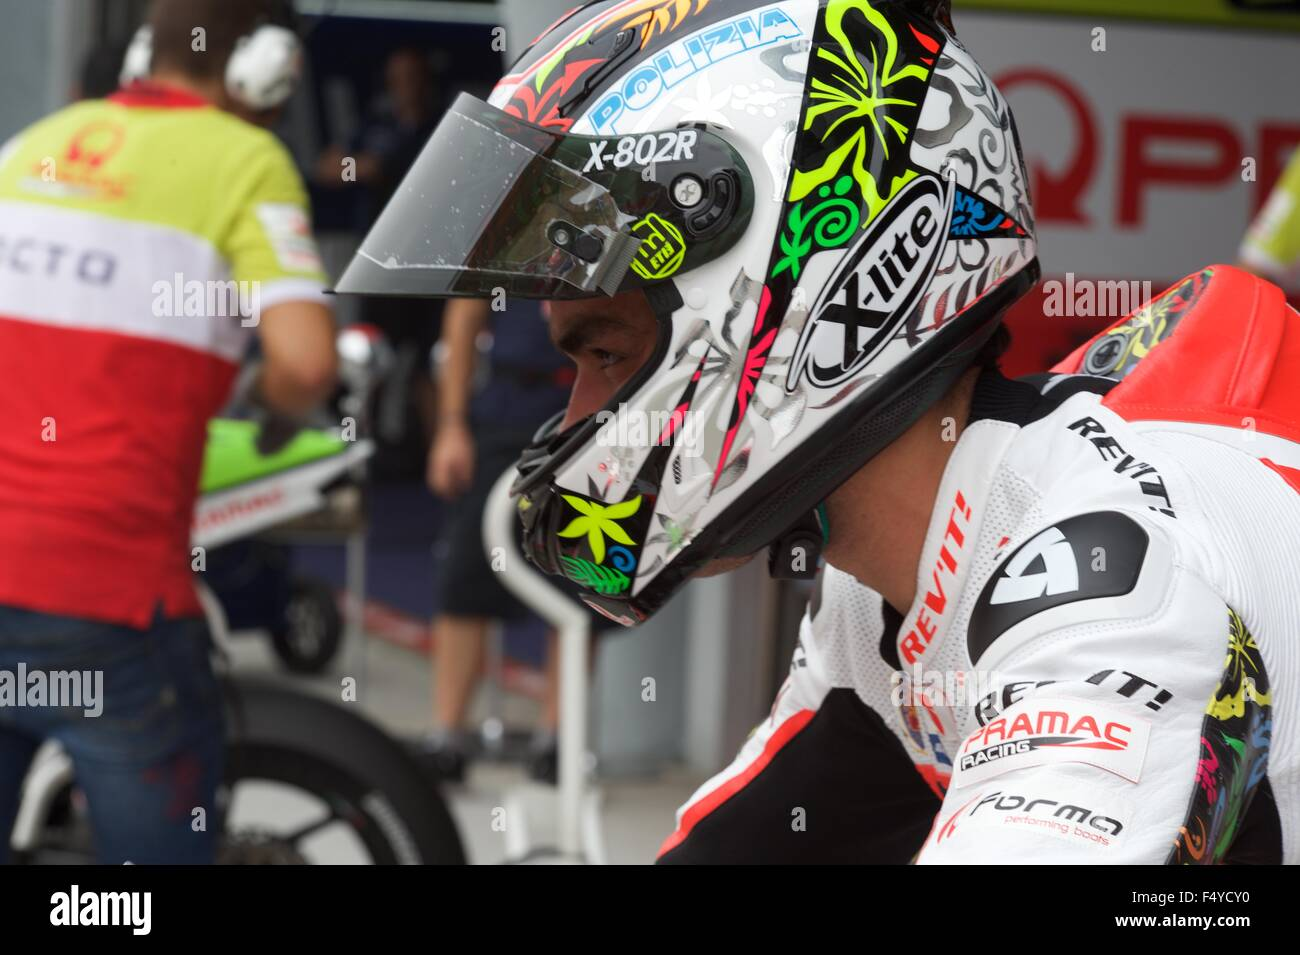 Sepang Circuit, Malaysia. 24th  Oct, 2015. Danilo Petrucci prepares to take to the track during qualifying for the - Stock Image